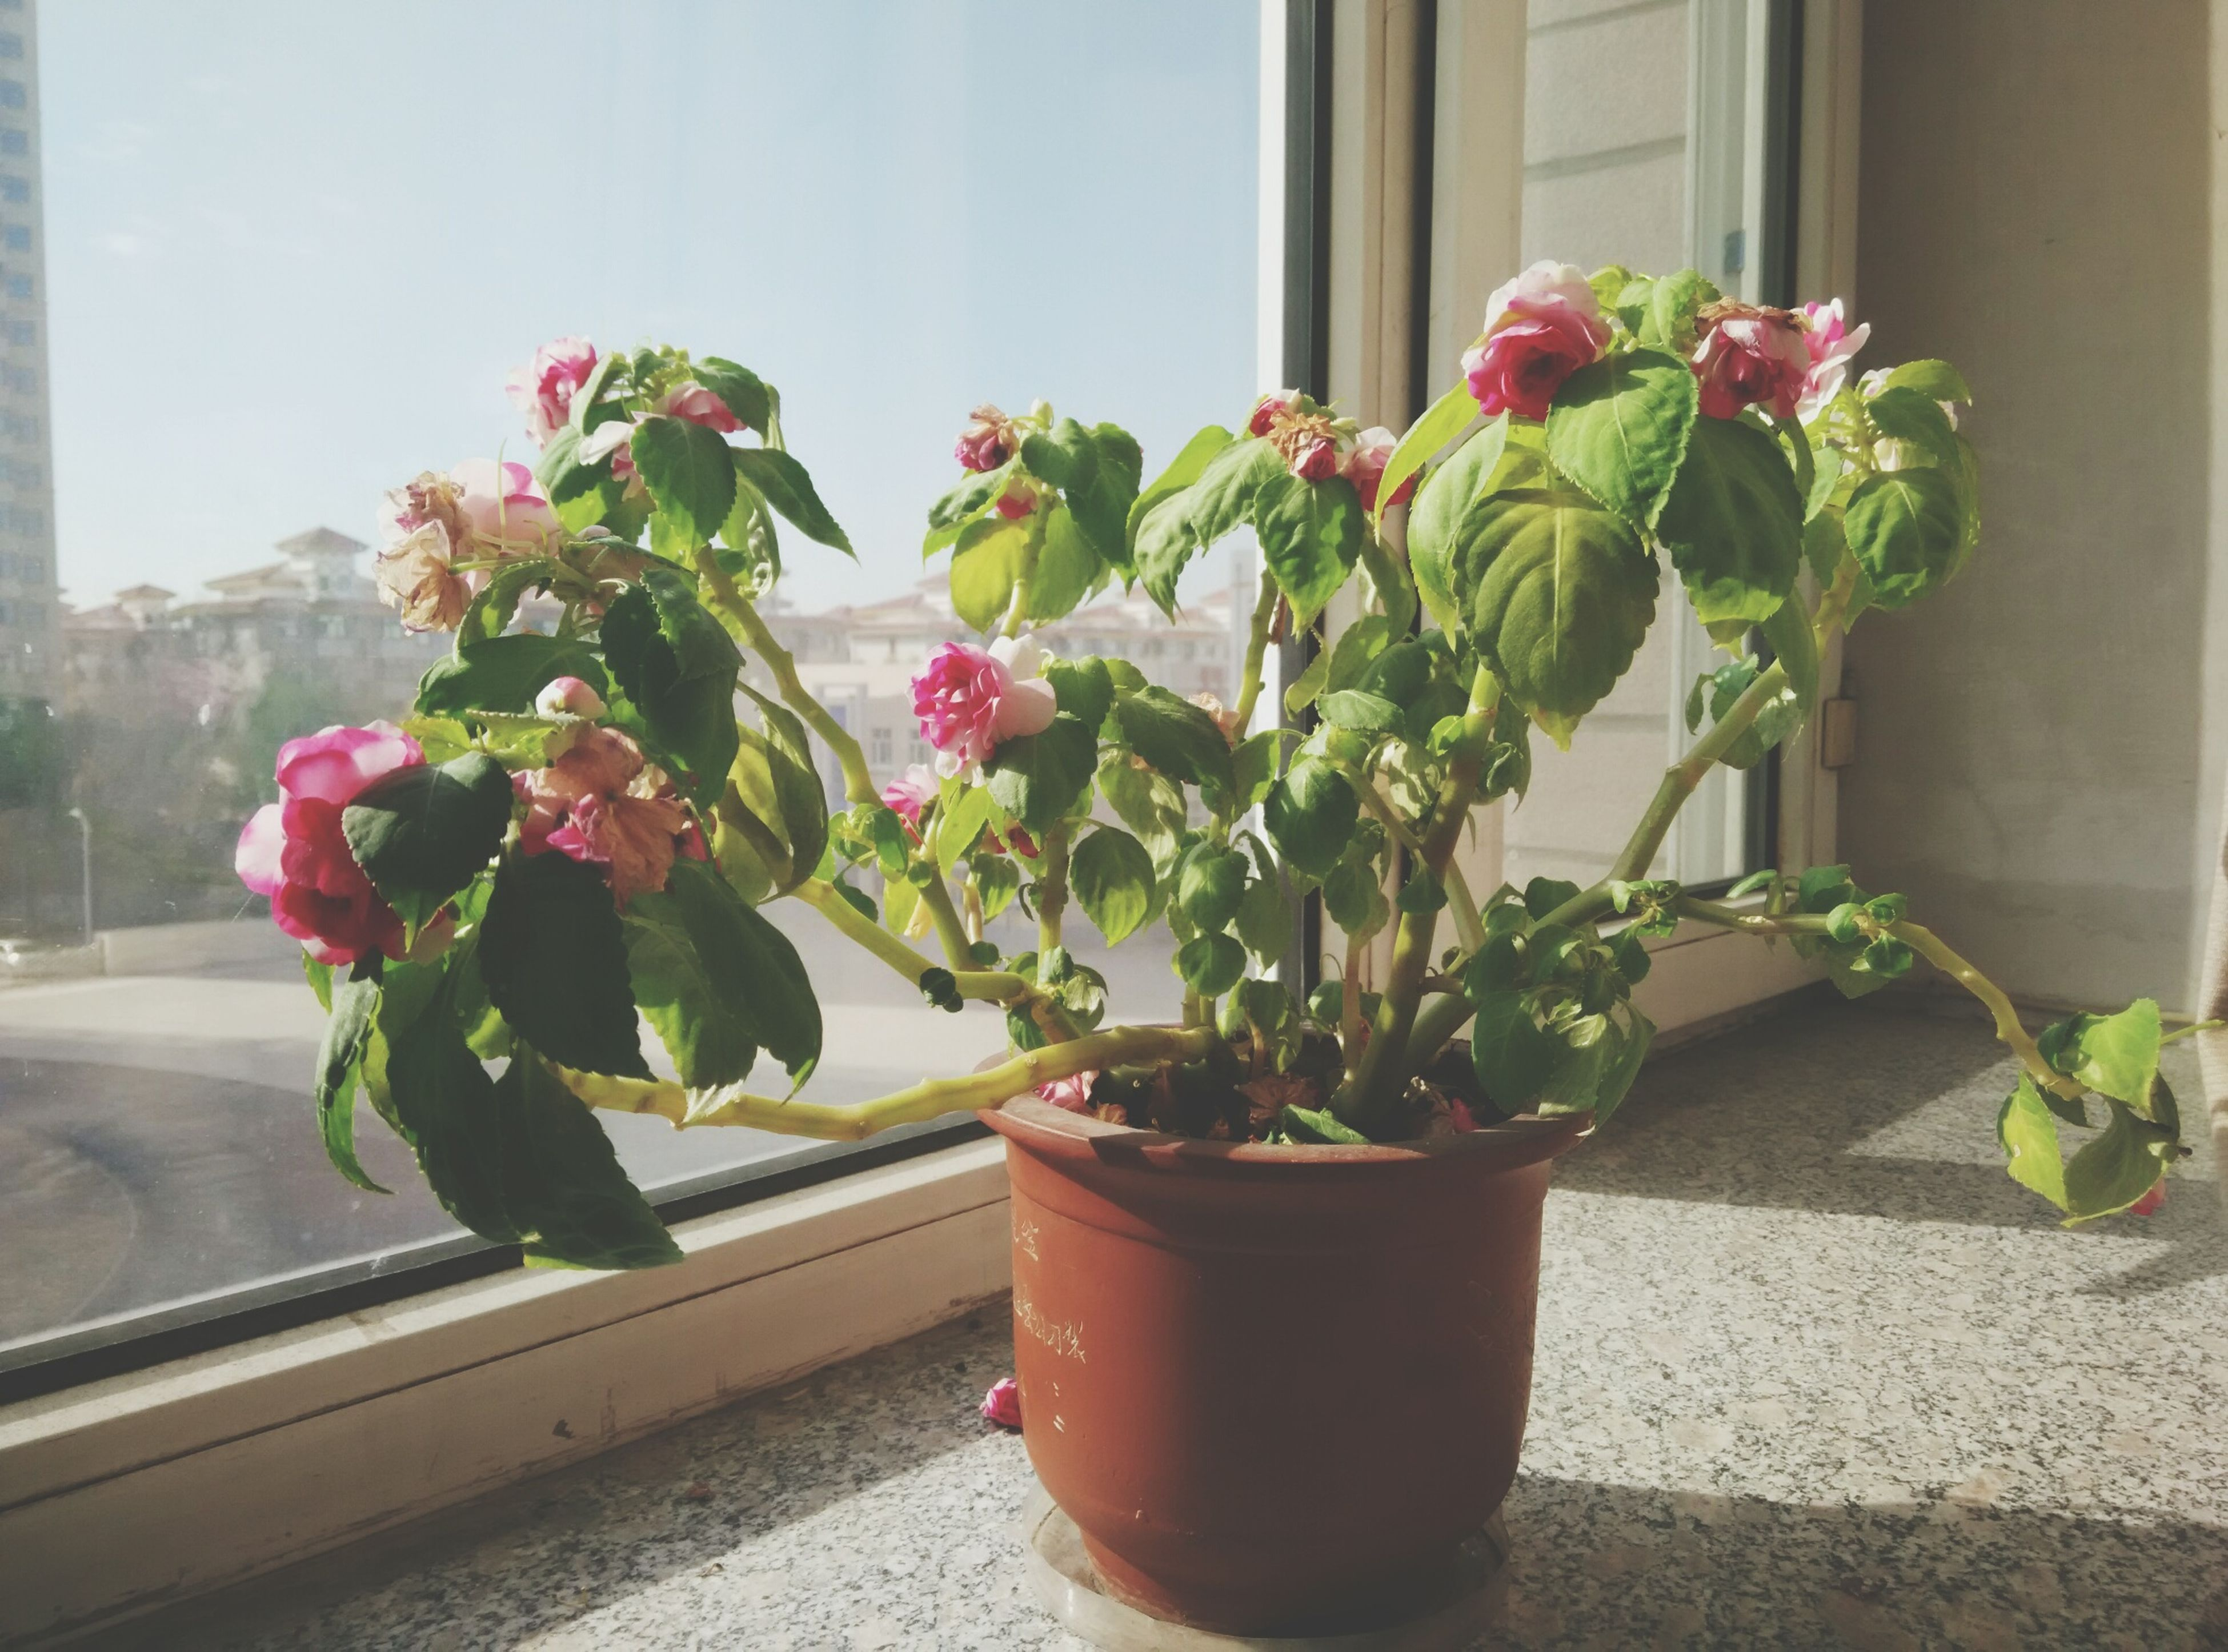 flower, potted plant, plant, freshness, growth, fragility, vase, window, leaf, indoors, petal, flower pot, window sill, nature, wall - building feature, flower head, beauty in nature, close-up, red, glass - material